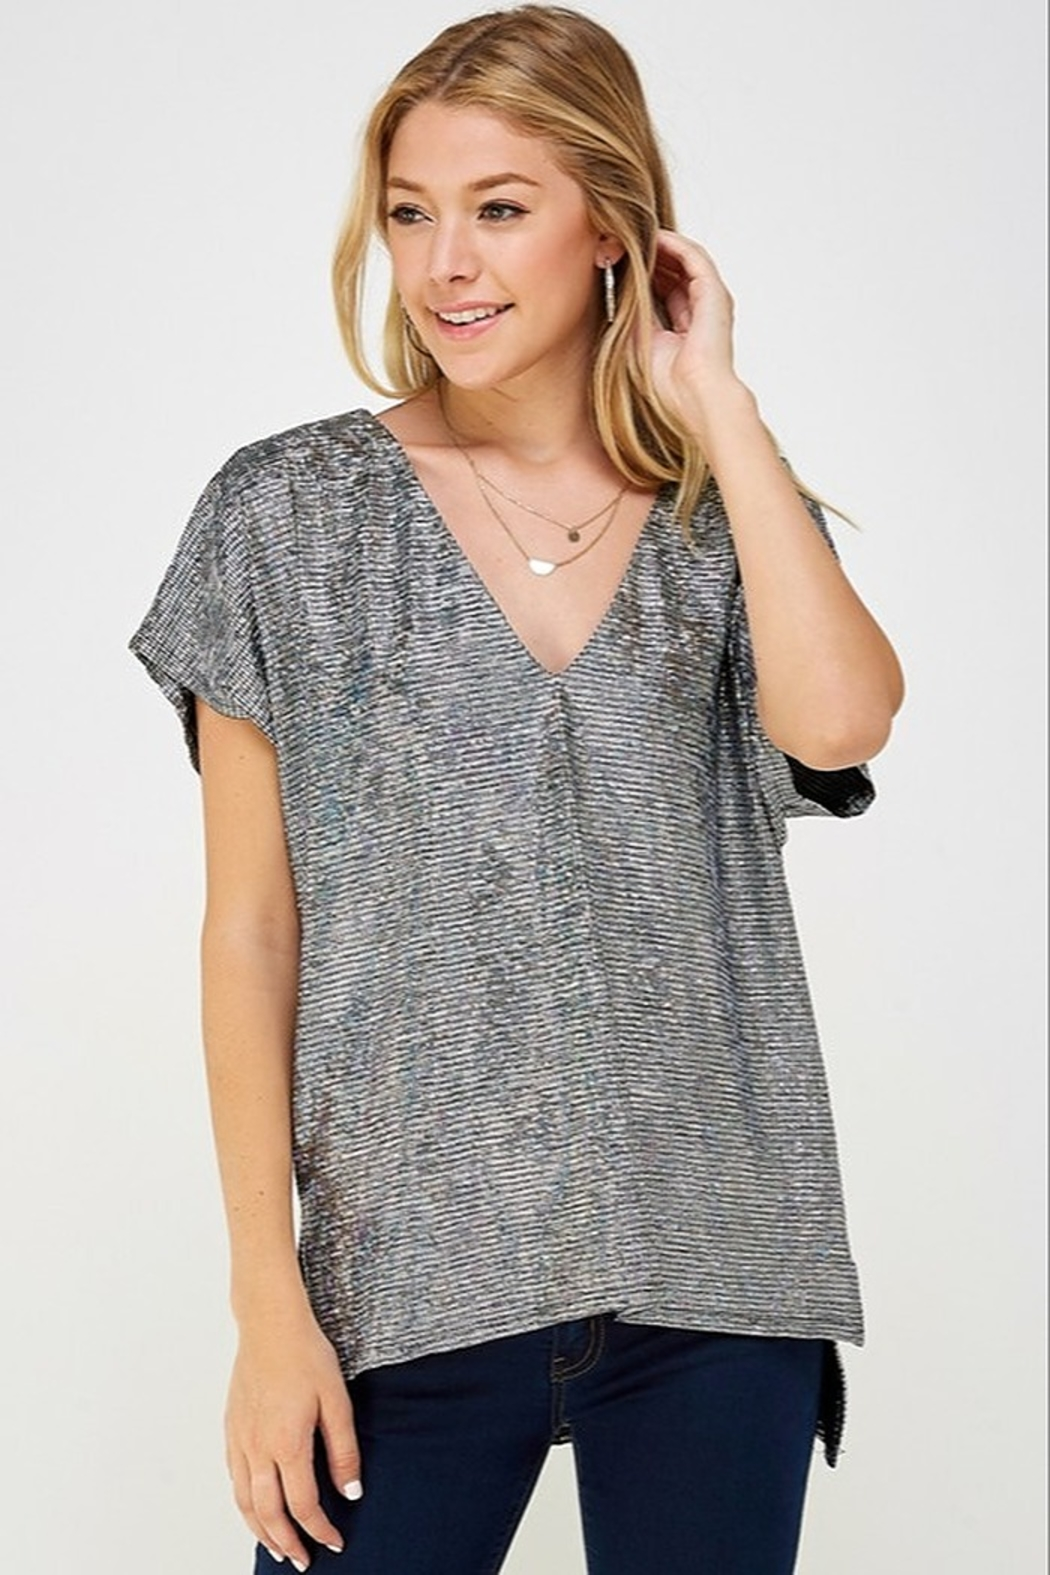 Caramela Holographic V-Neck Top - Front Cropped Image